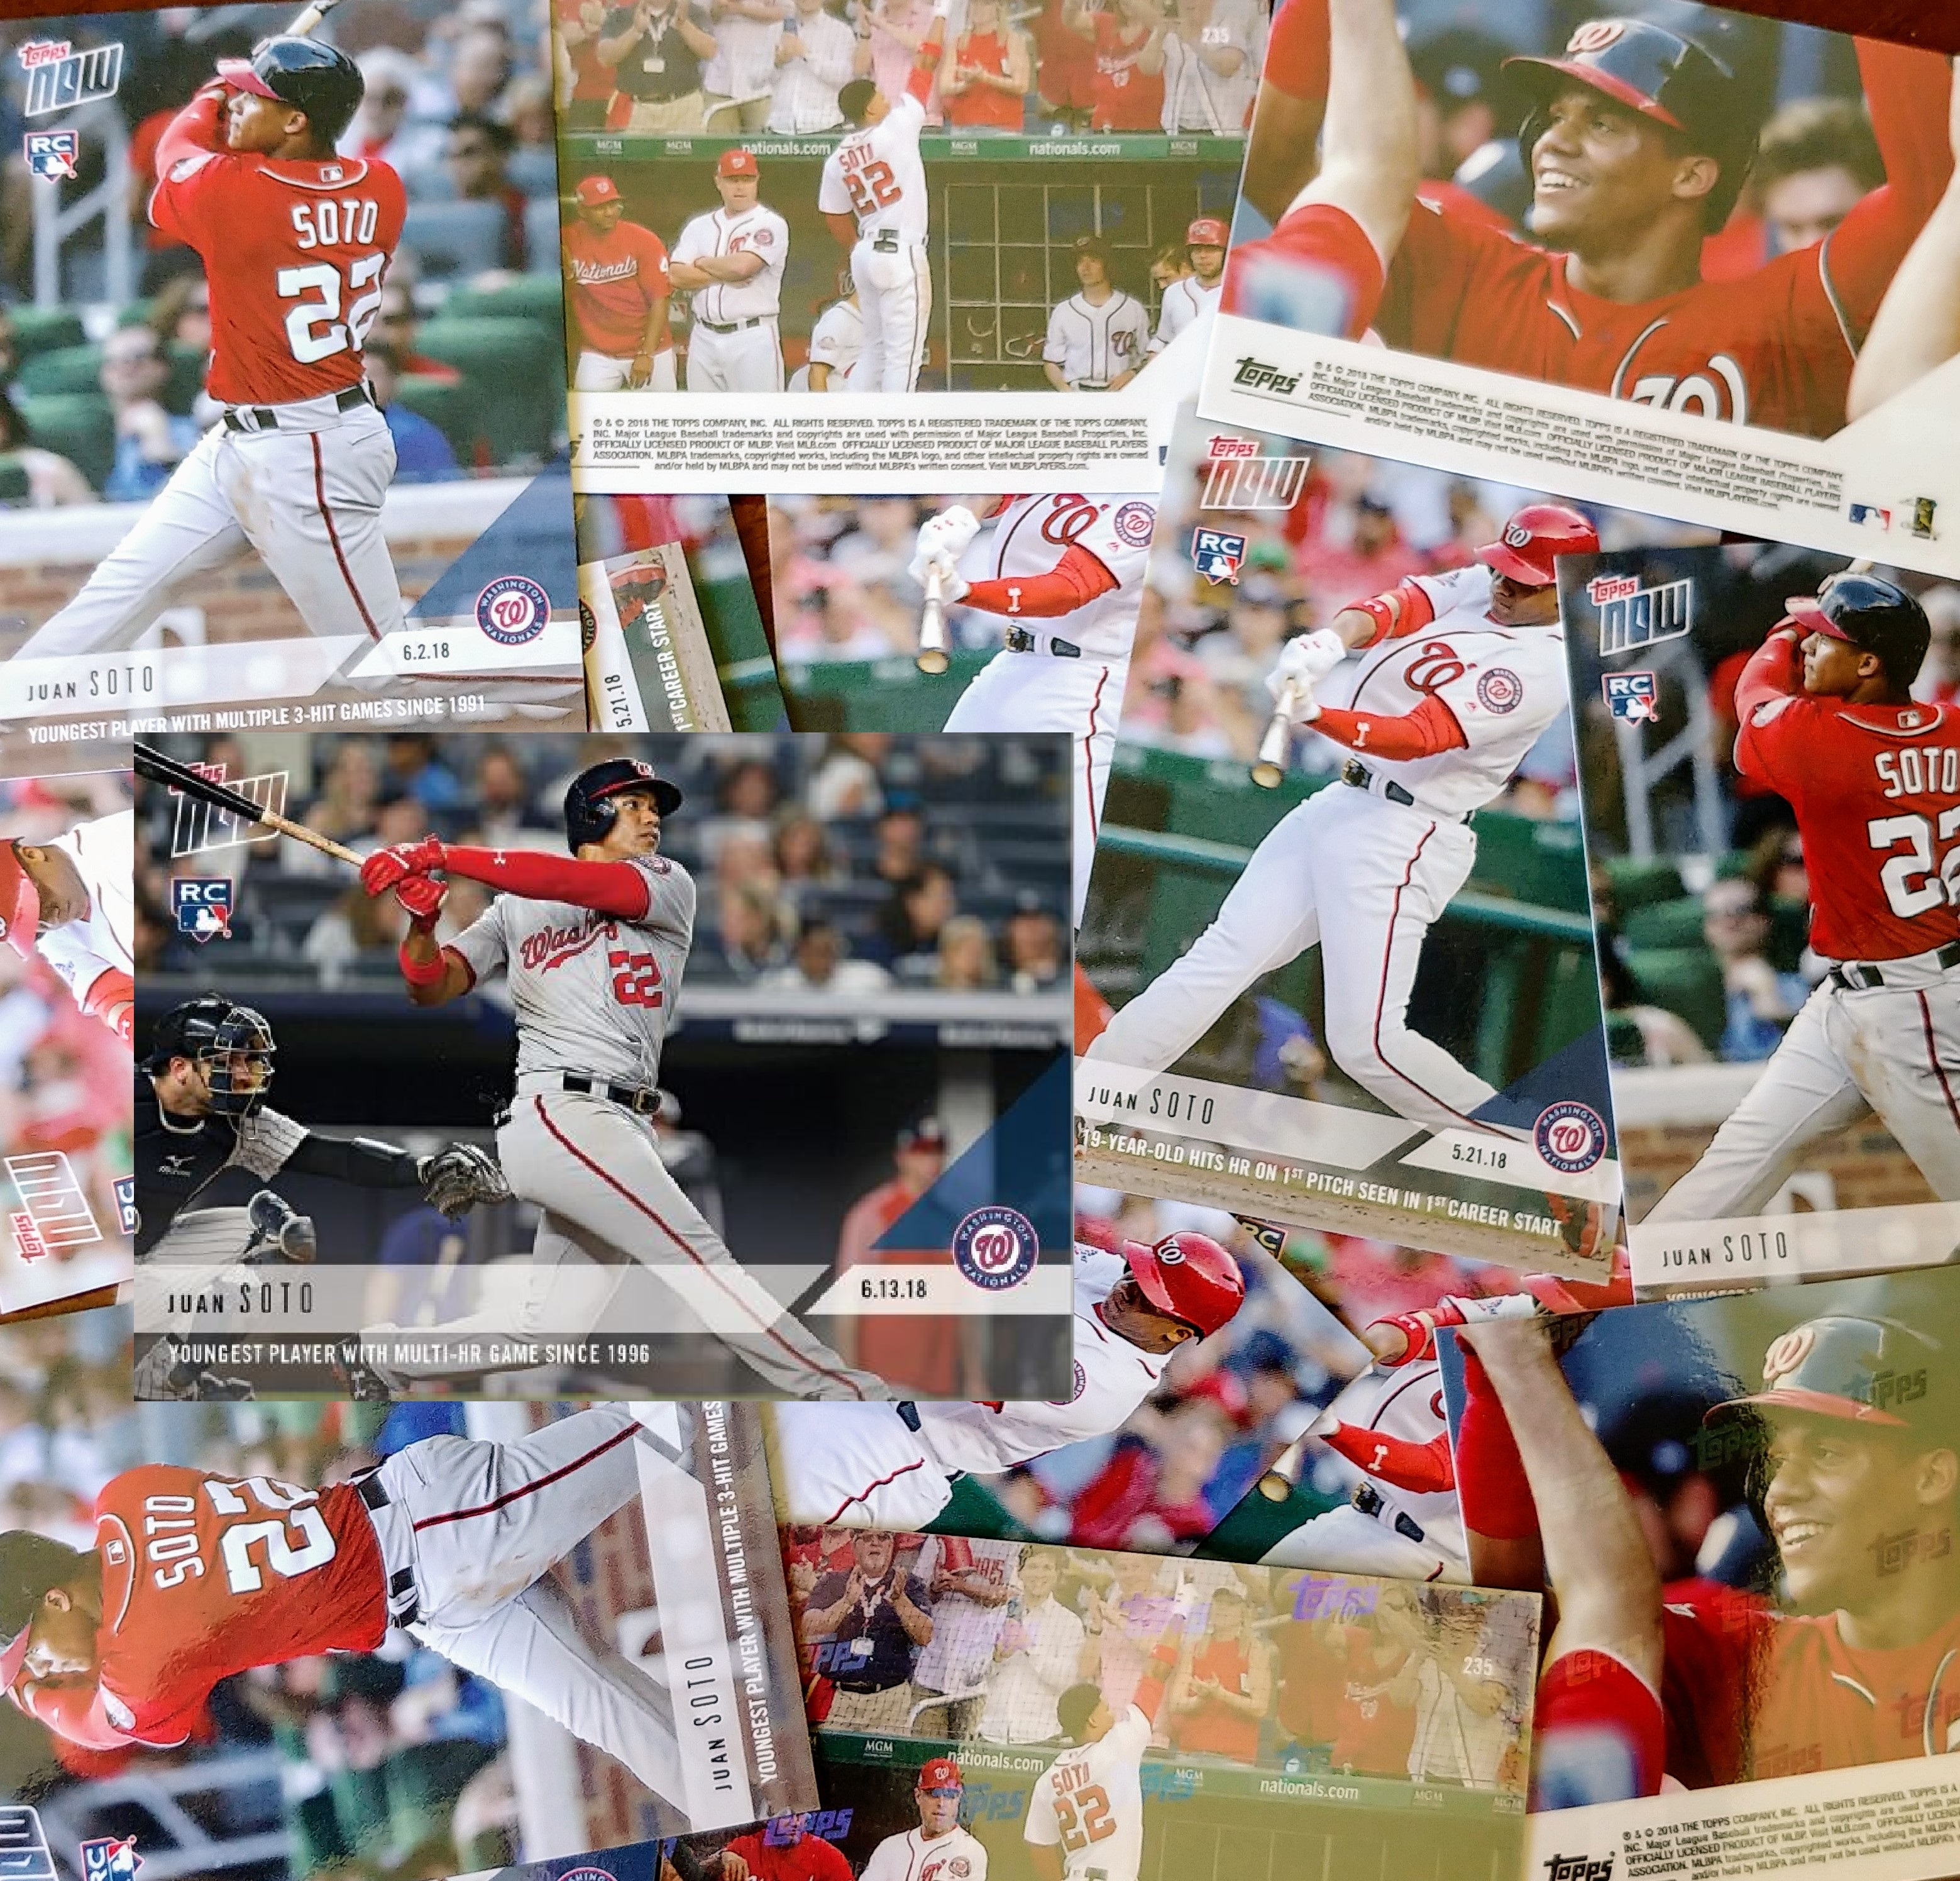 Soto-topps-cards-collage-1